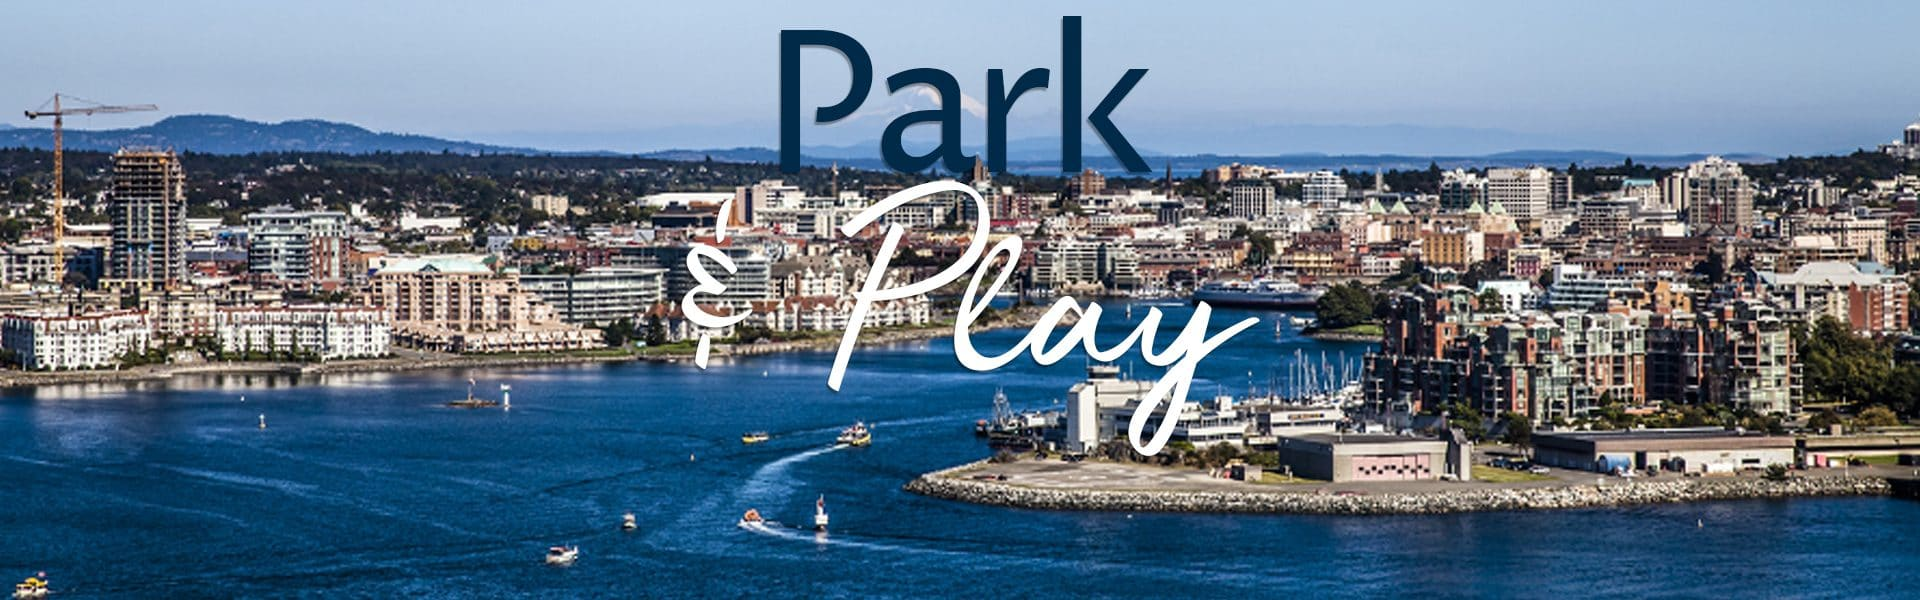 Park and Play Hotel Package